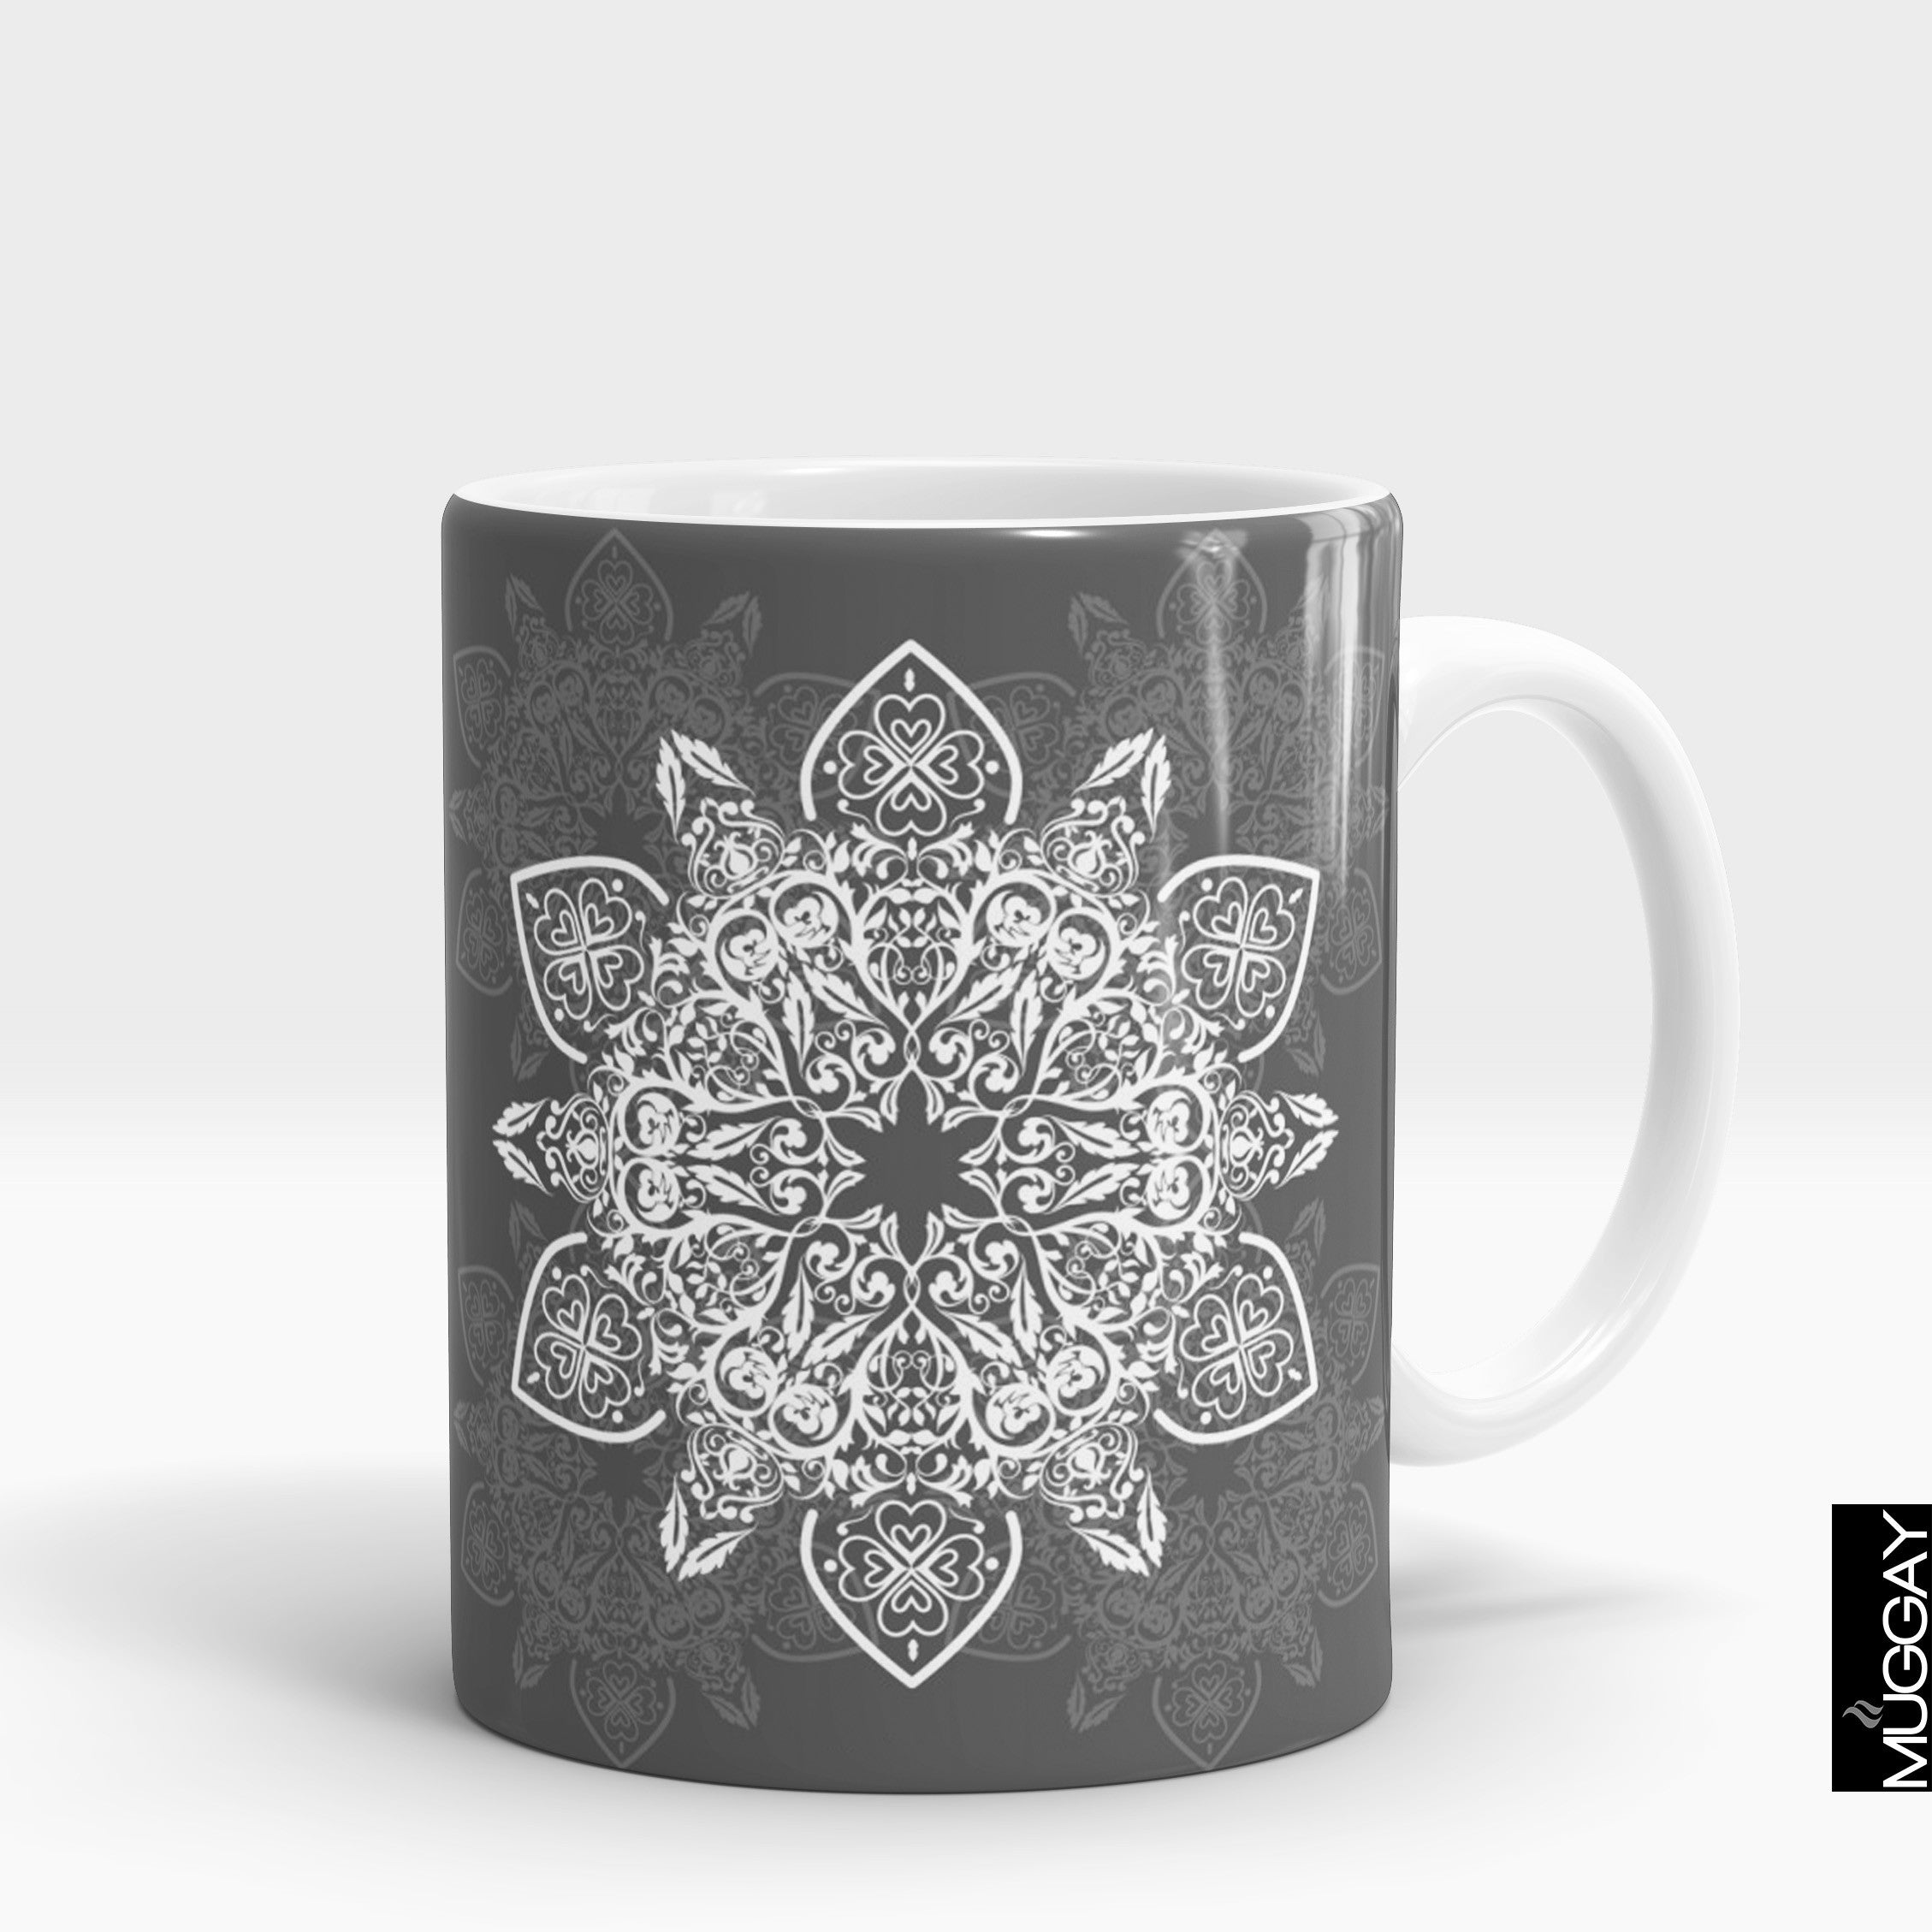 Mandala art mugs -12